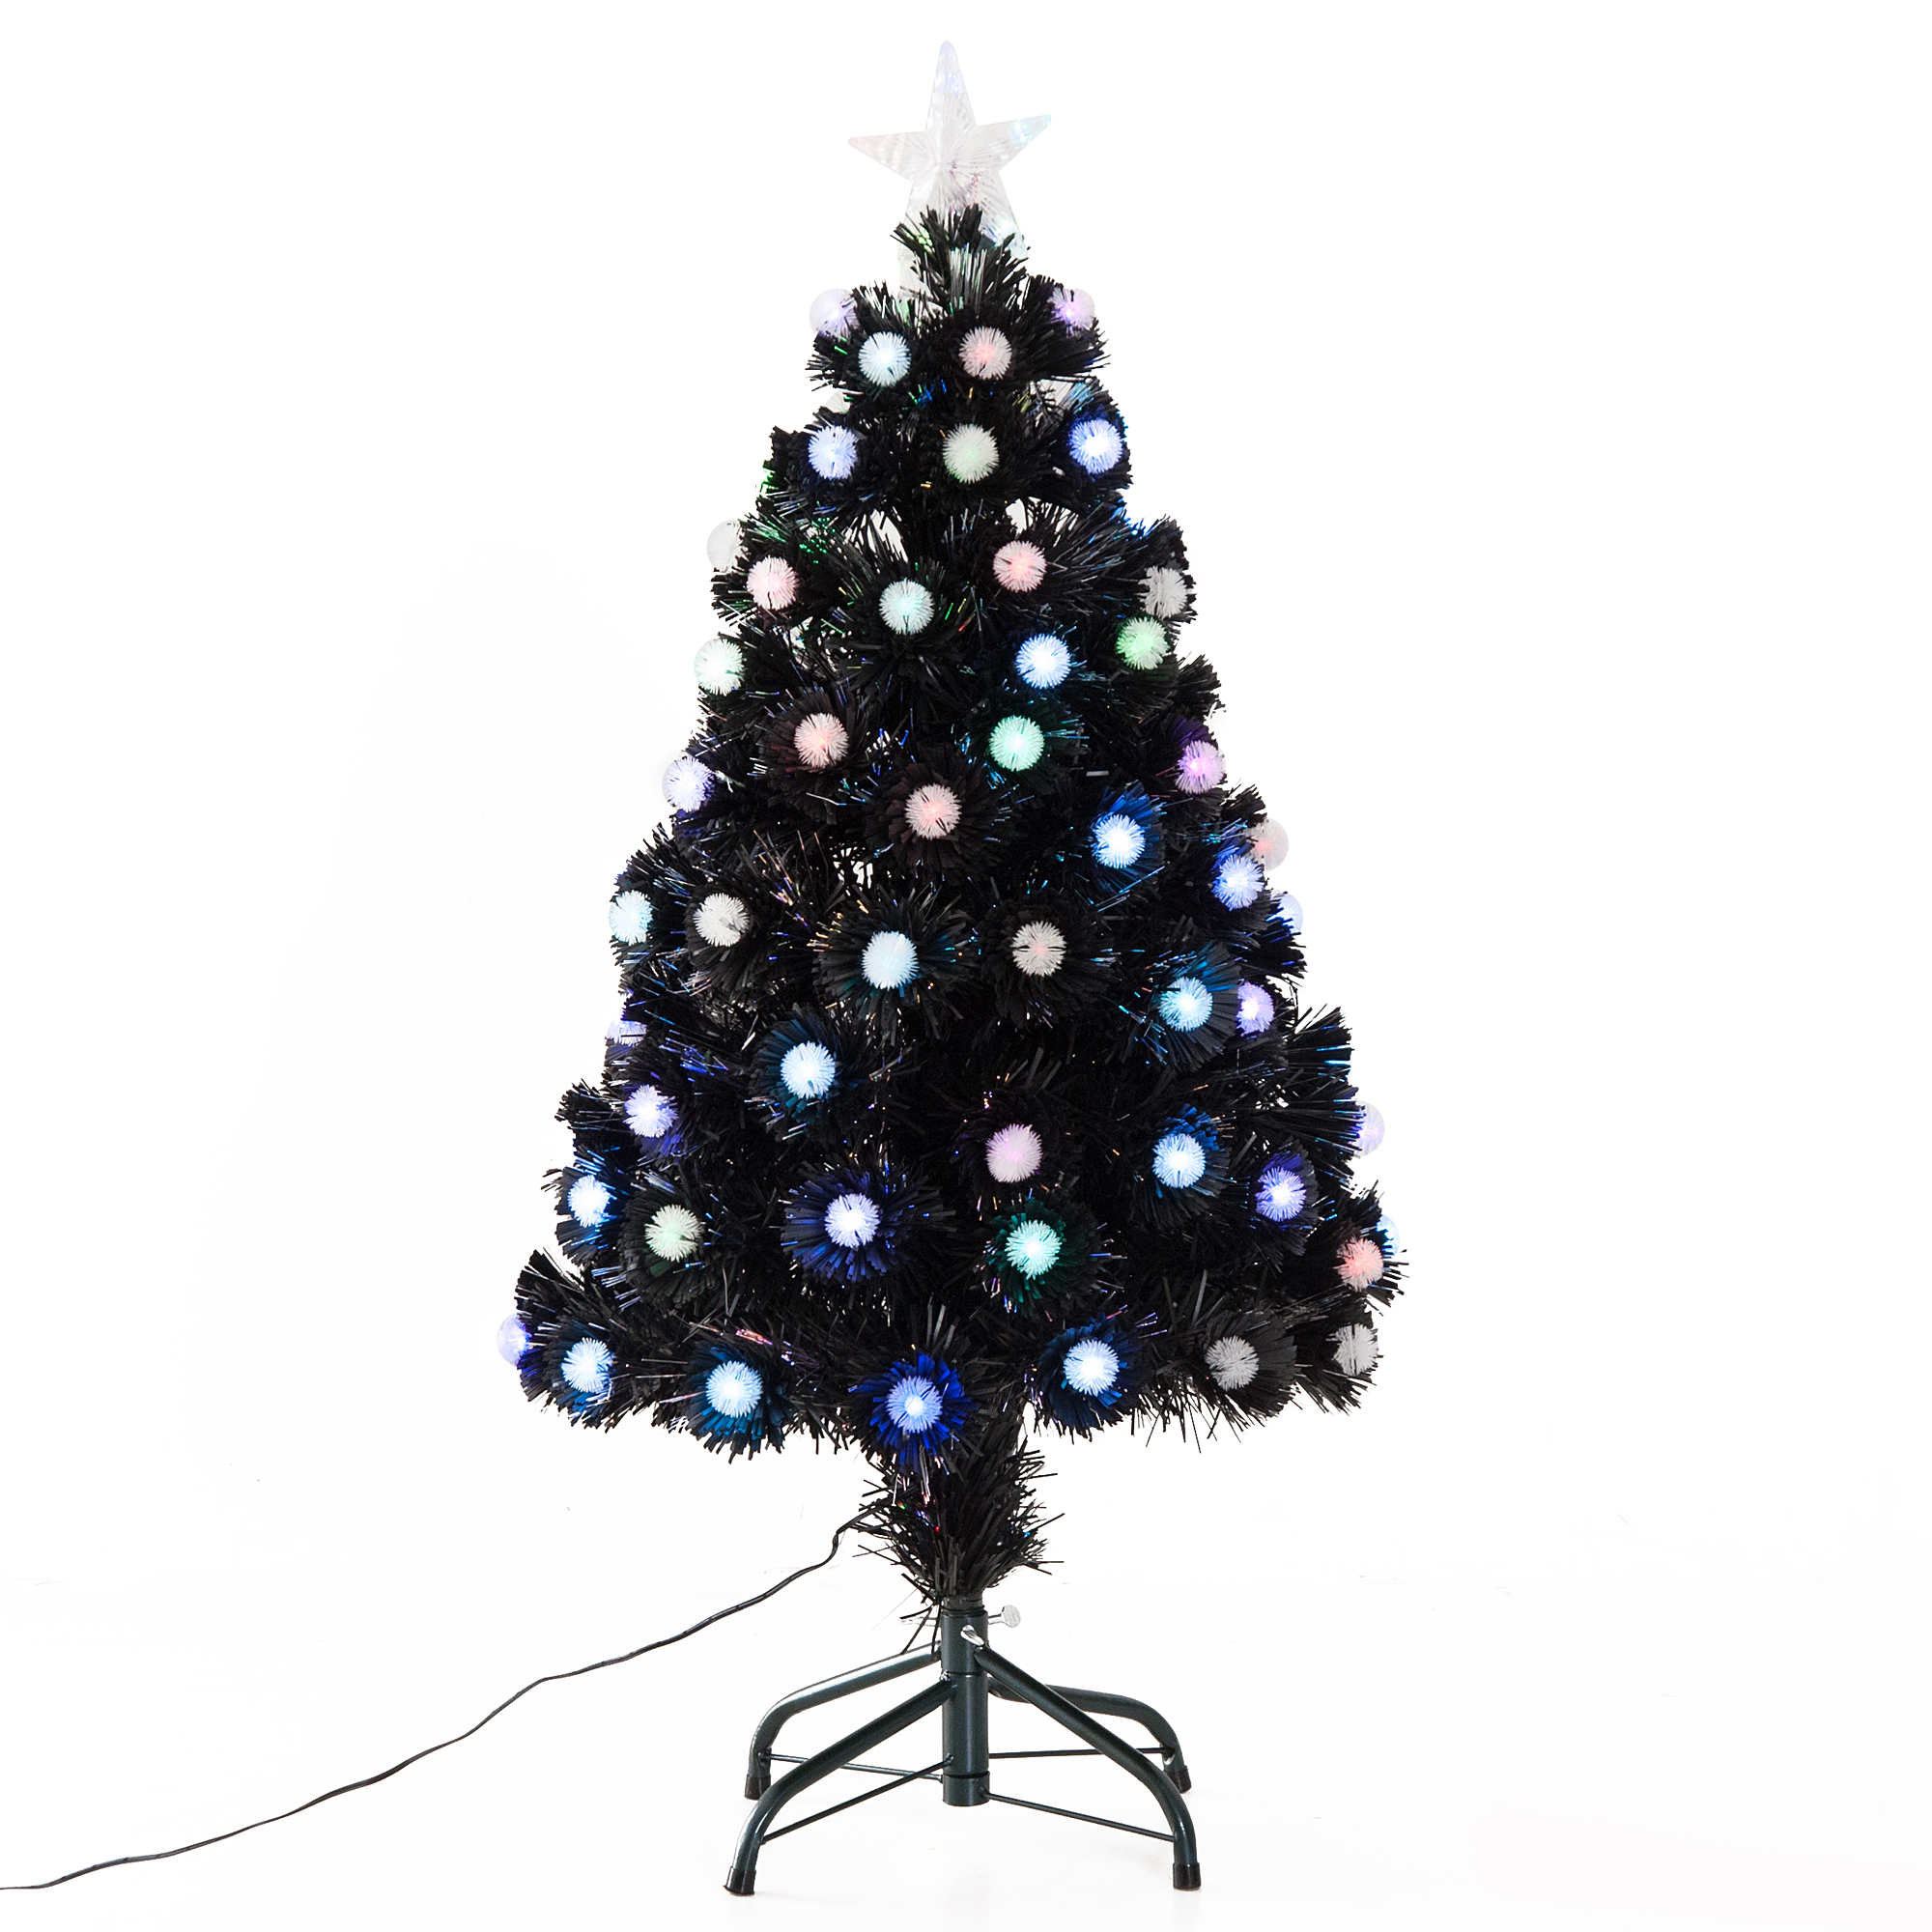 Image of £28.99 HOMCOM 90cm Artificial Christmas Tree W/80 pcs LED / 3ft Fibre Optic Xmas Pre-lit Holiday Décor with Metal Stand Entrance Lights 80 Tips Star Steel 830-202 5056029807538